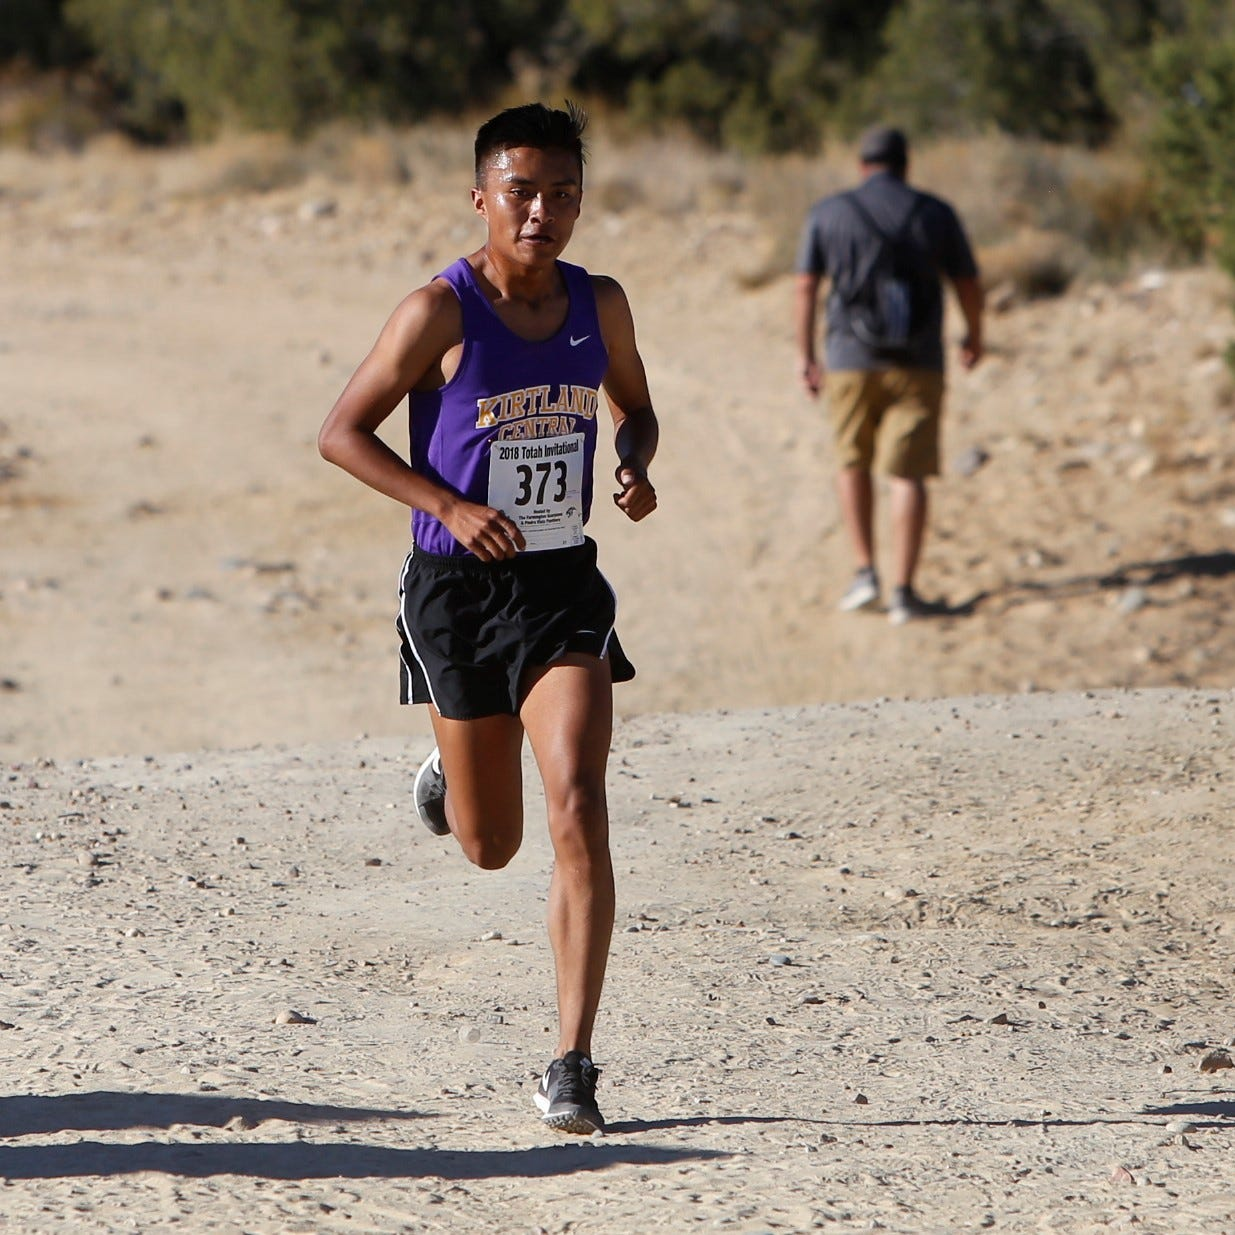 Kashon Harrison again named NM's top runner